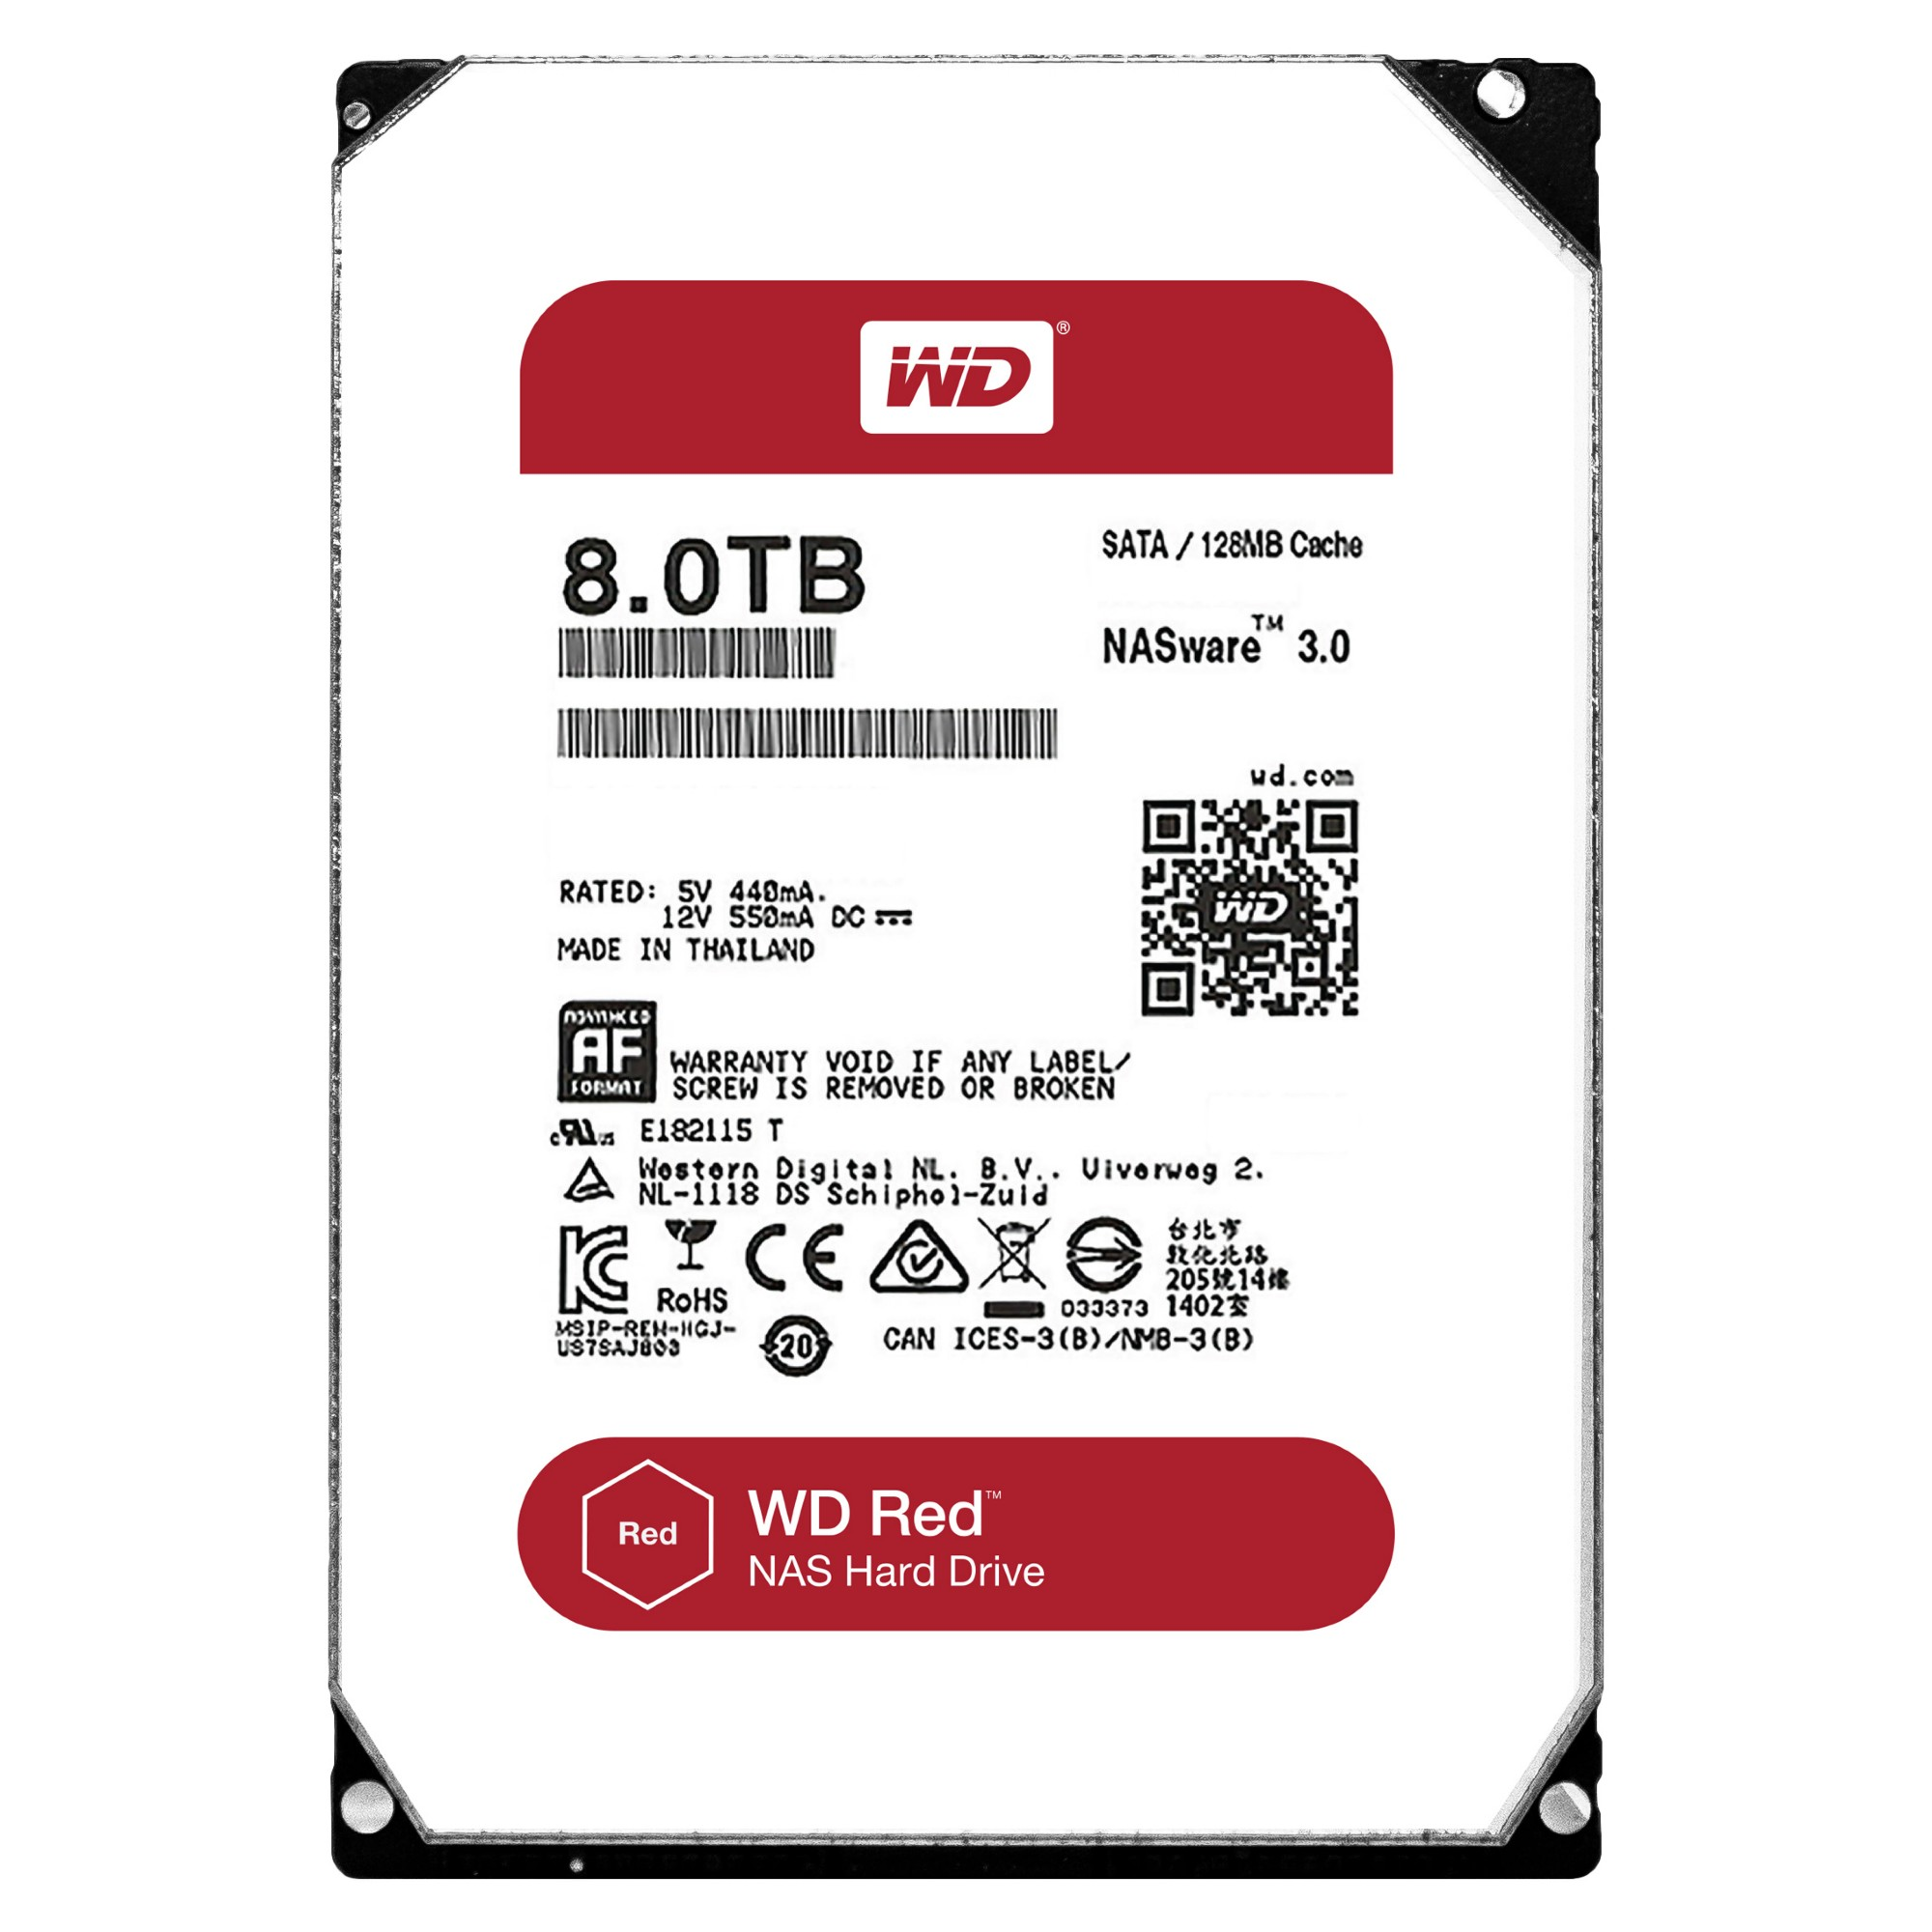 Western Digital Red 8000GB Serial ATA III internal hard drive